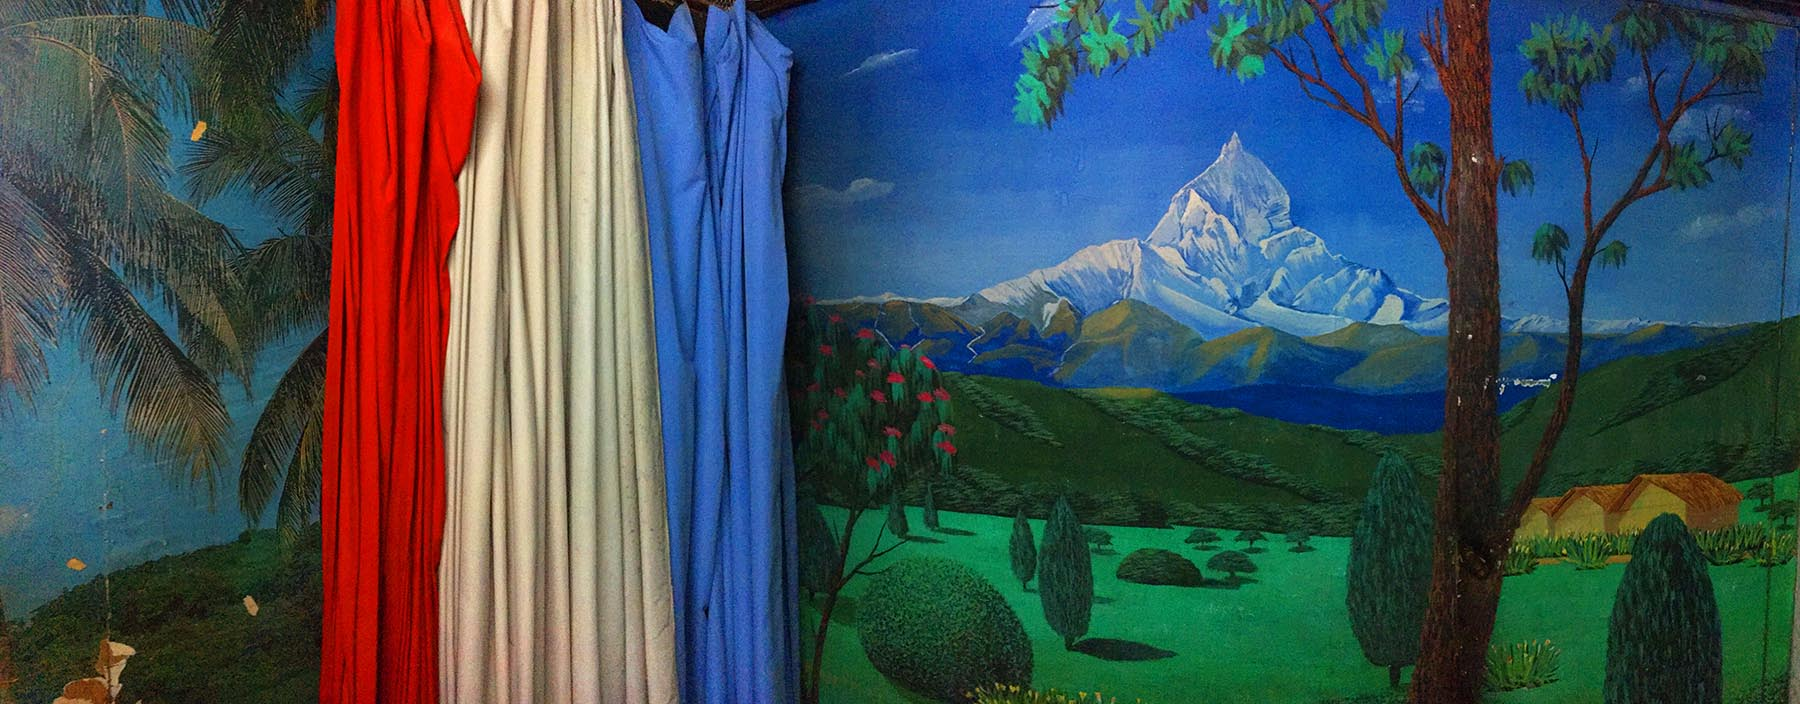 Photography studios in Nepal use aspirational backdrops, such as an idealised landscape, to allow people to shed their day-to-day identities and imagine a different life.